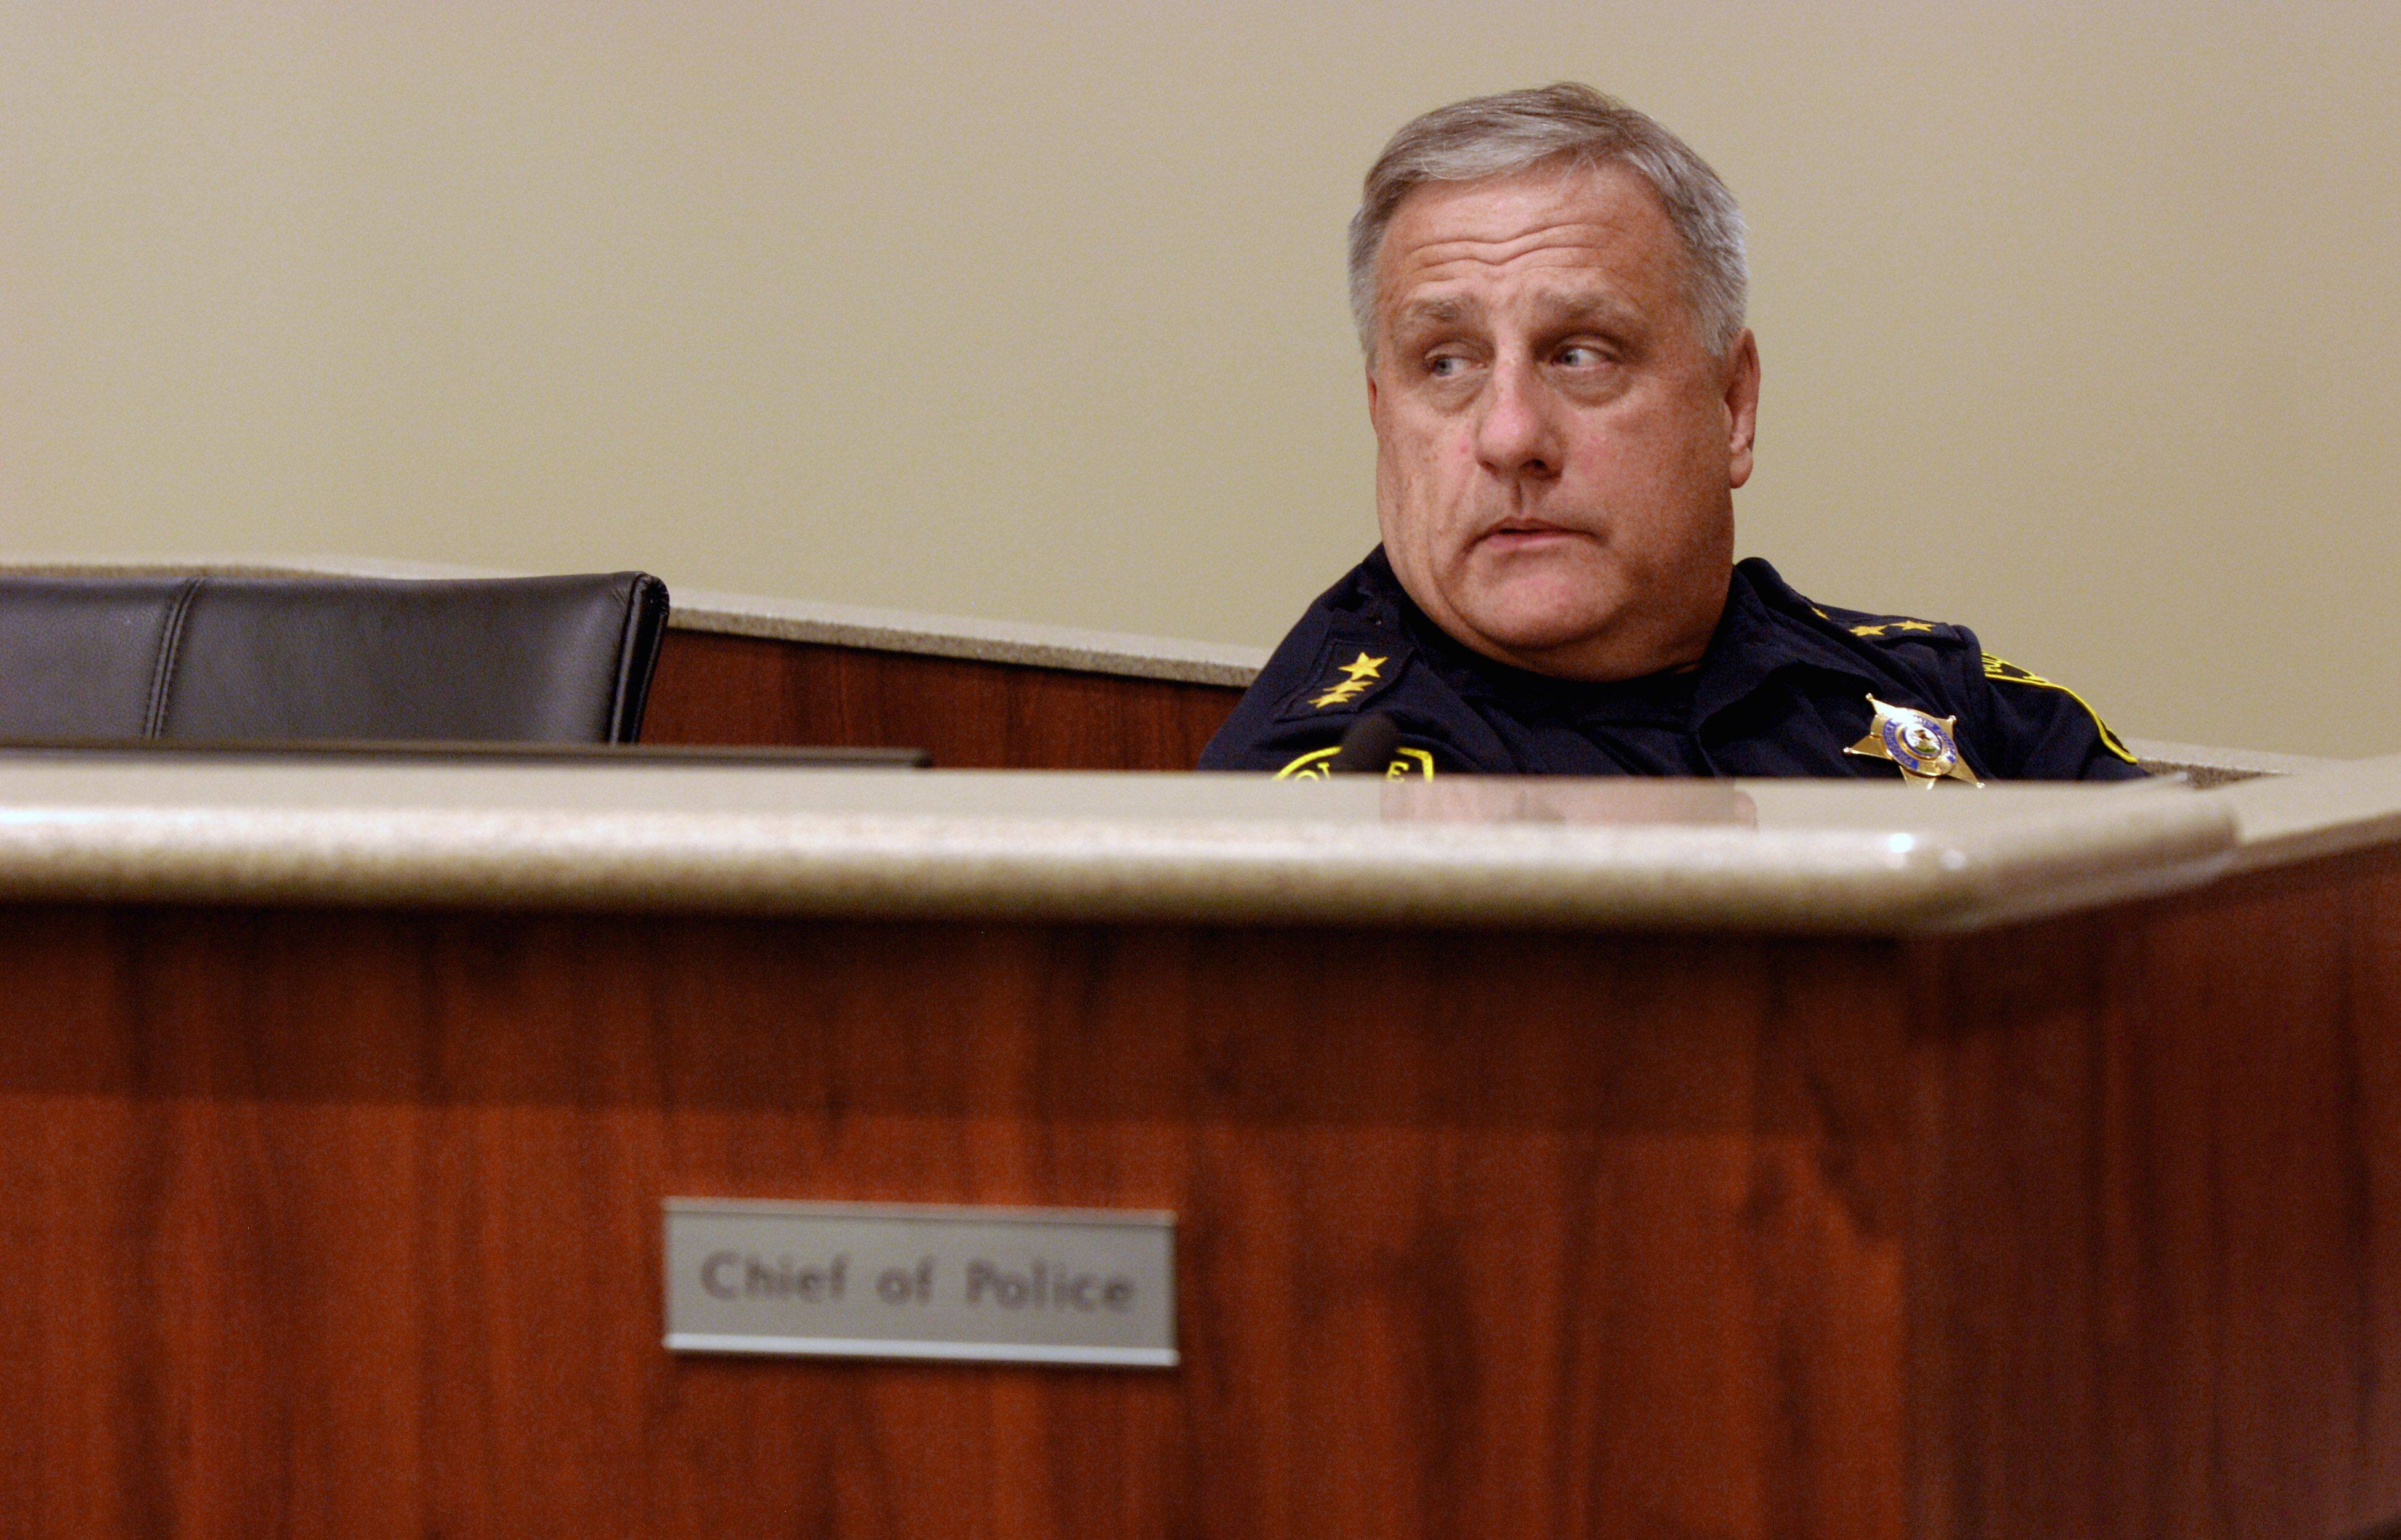 Prospect Village Police Chief Bruce Morris waits for the village board to come out a closed session that includes discussing possible police layoffs. The Mayor Dolly Vole announced that they will reveal the results of the closed session at a later date.